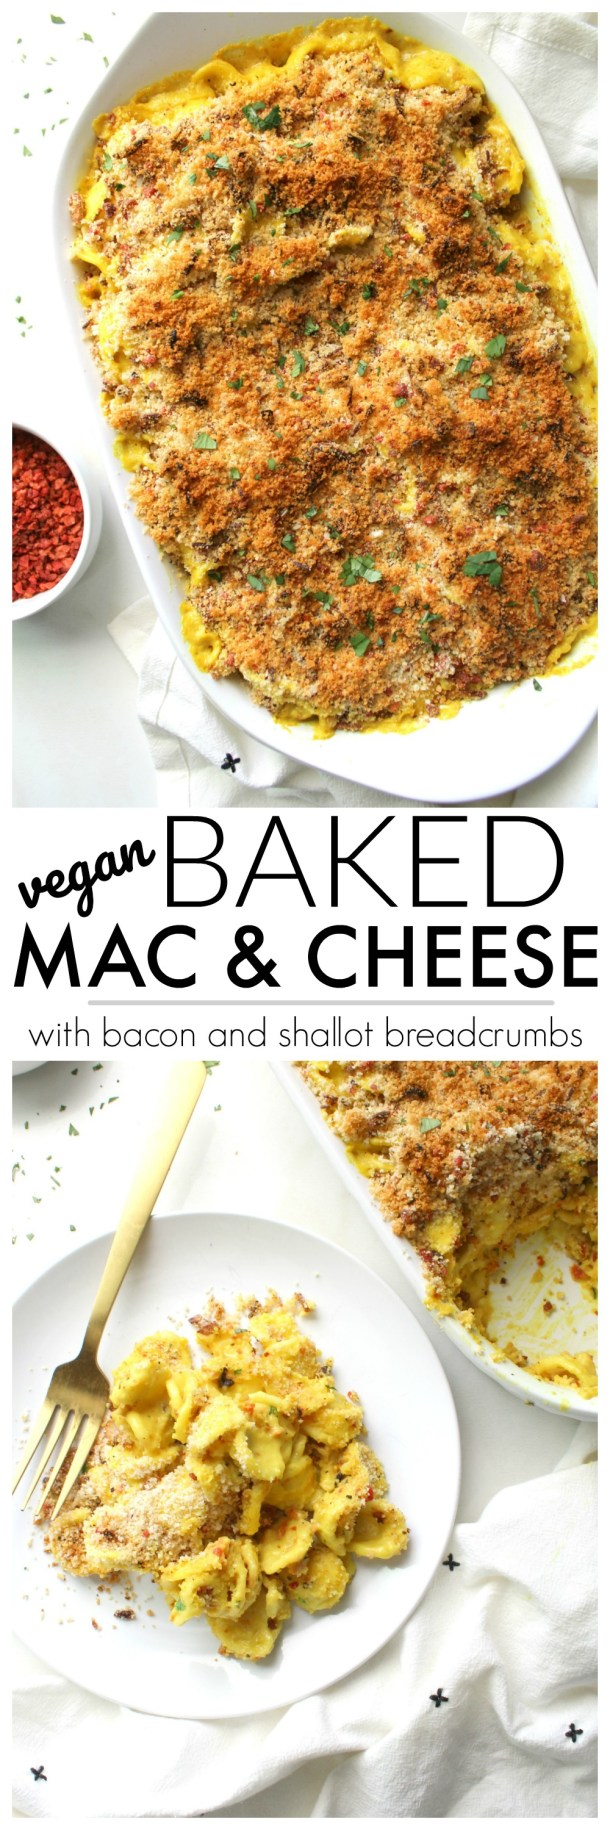 Creamy, decadent and topped with a bacon and shallot breadcrumb crust, this is the Best Baked Vegan Mac and Cheese.Ready in less than an hour! | ThisSavoryVegan #vegan #macandcheese